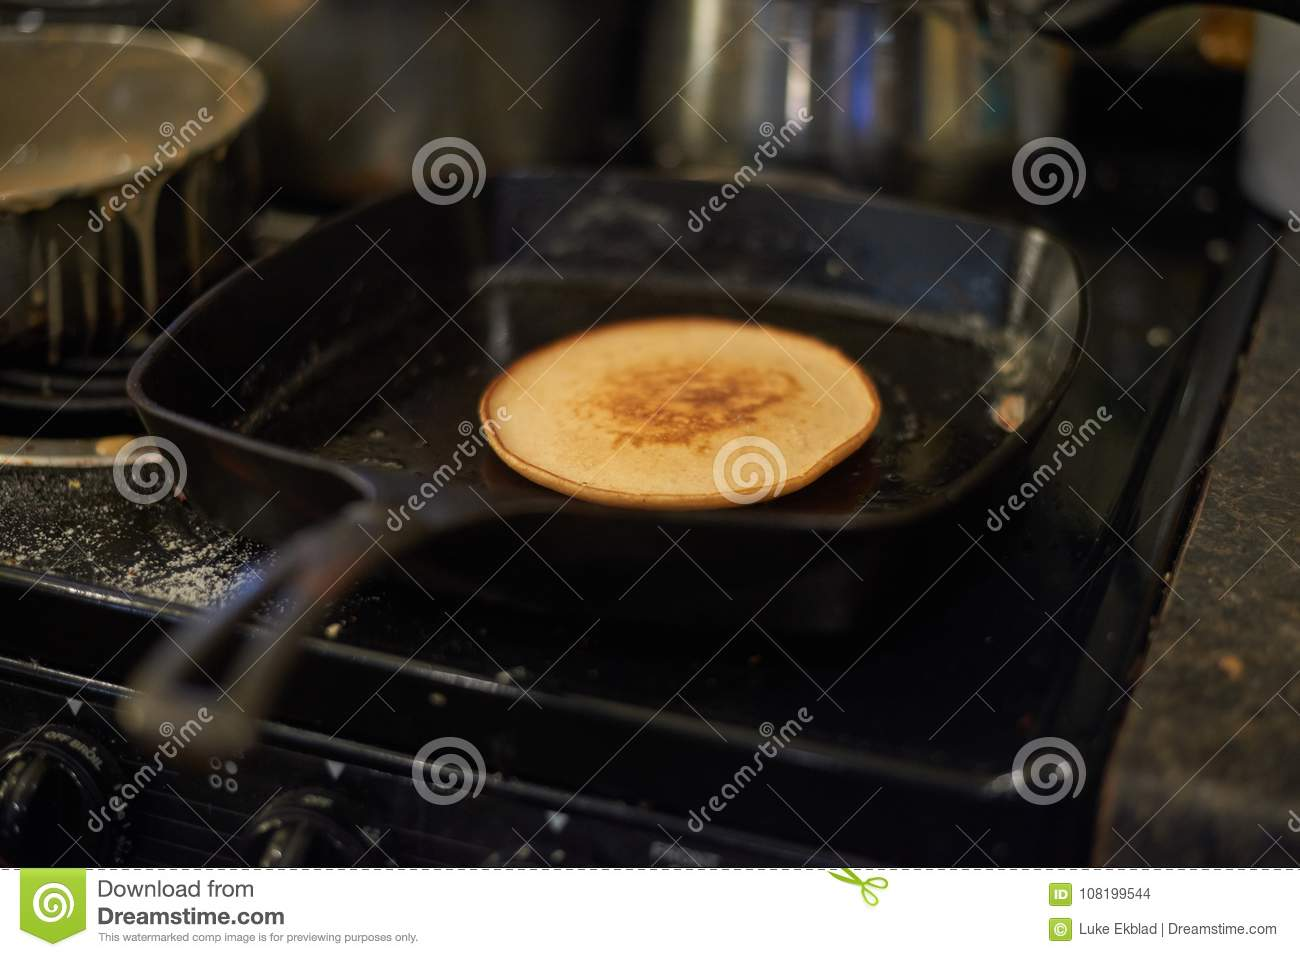 Breakfast pancake on the pan stock photo image of buttery tasty download breakfast pancake on the pan stock photo image of buttery tasty 108199544 ccuart Gallery